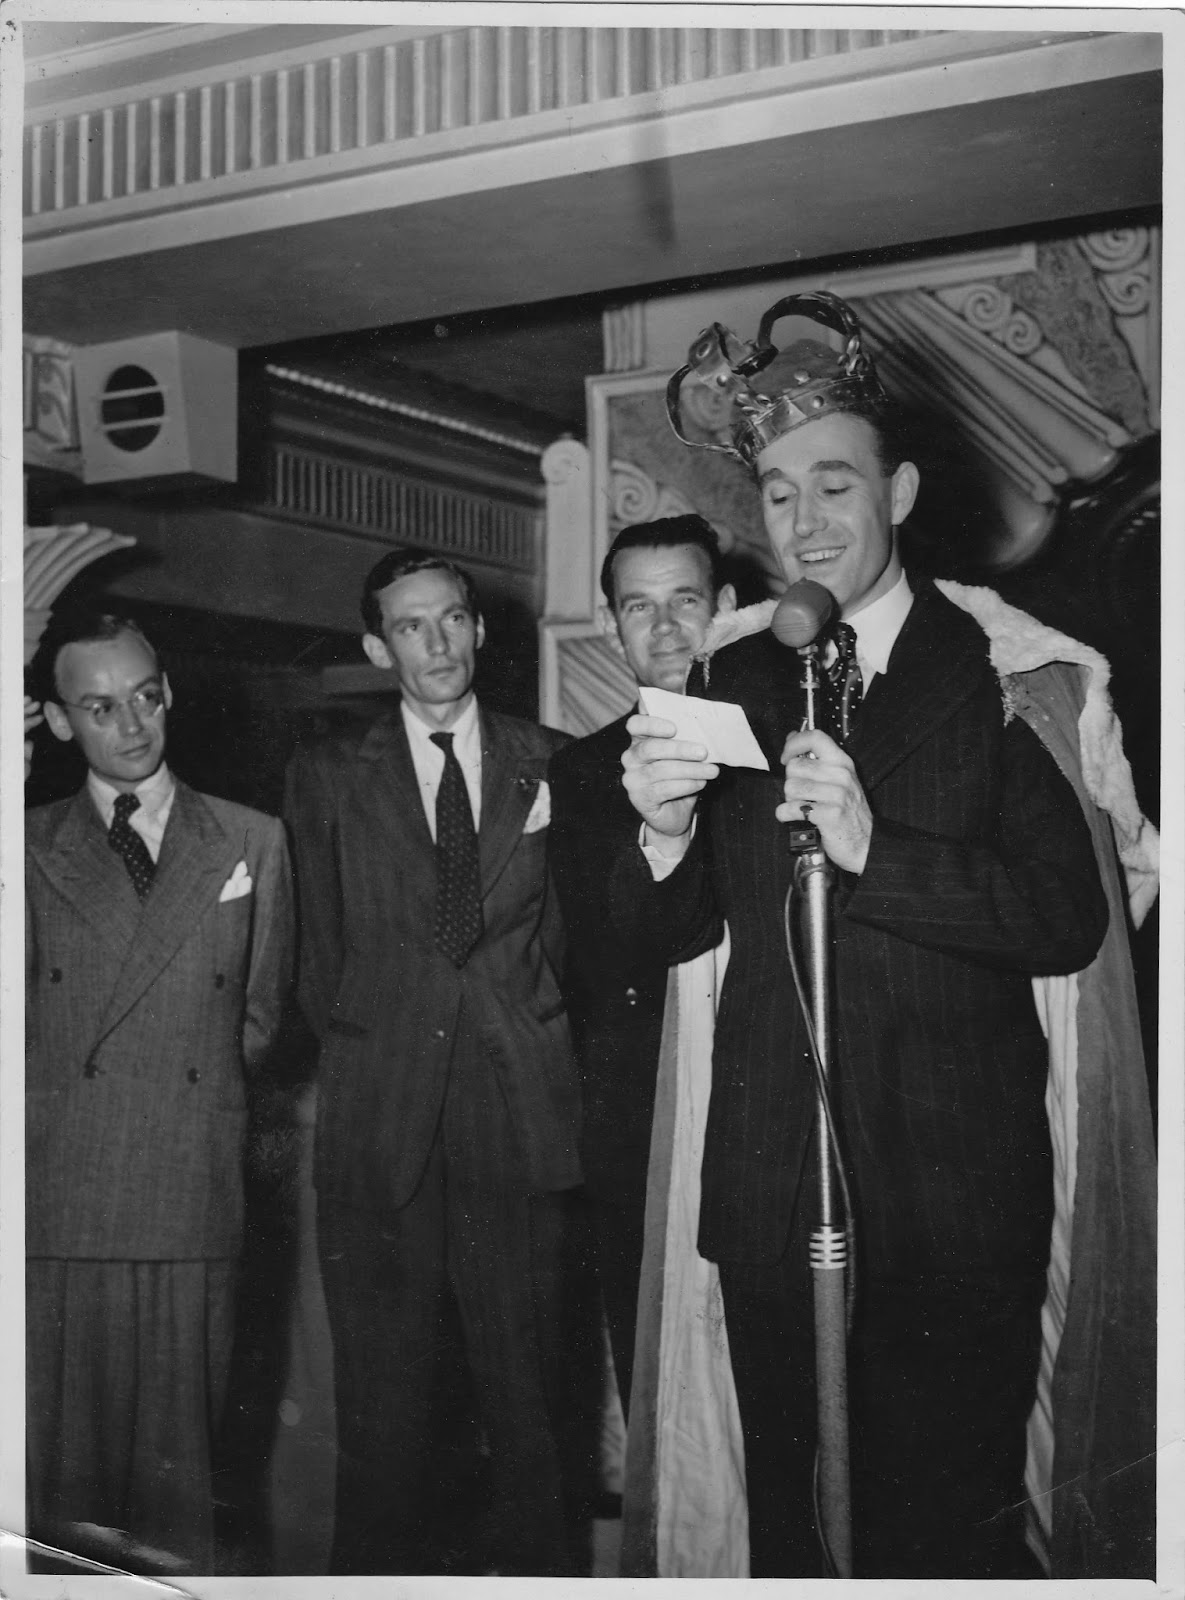 Max Oldaker, winner of the Popular Man contest, with his badly-fitting crown on 31 October 1945. Also in the photo, Jack Cazabon, Peter Finch and Jack Burgess